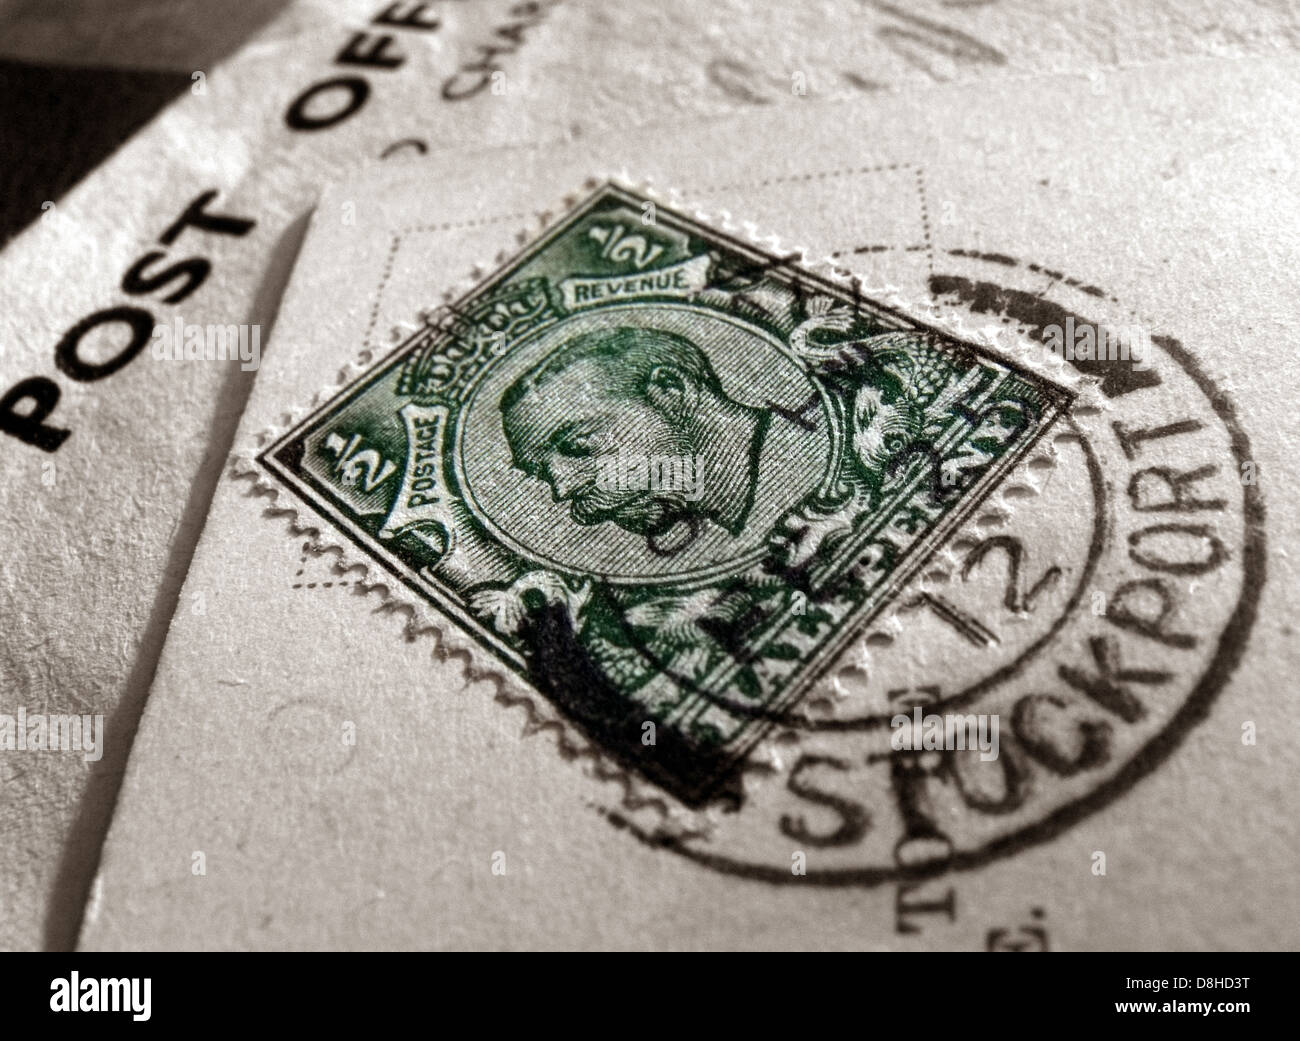 Green Half Penny British Stamp postmarked Stockport Cheshire England UK - Stock Image